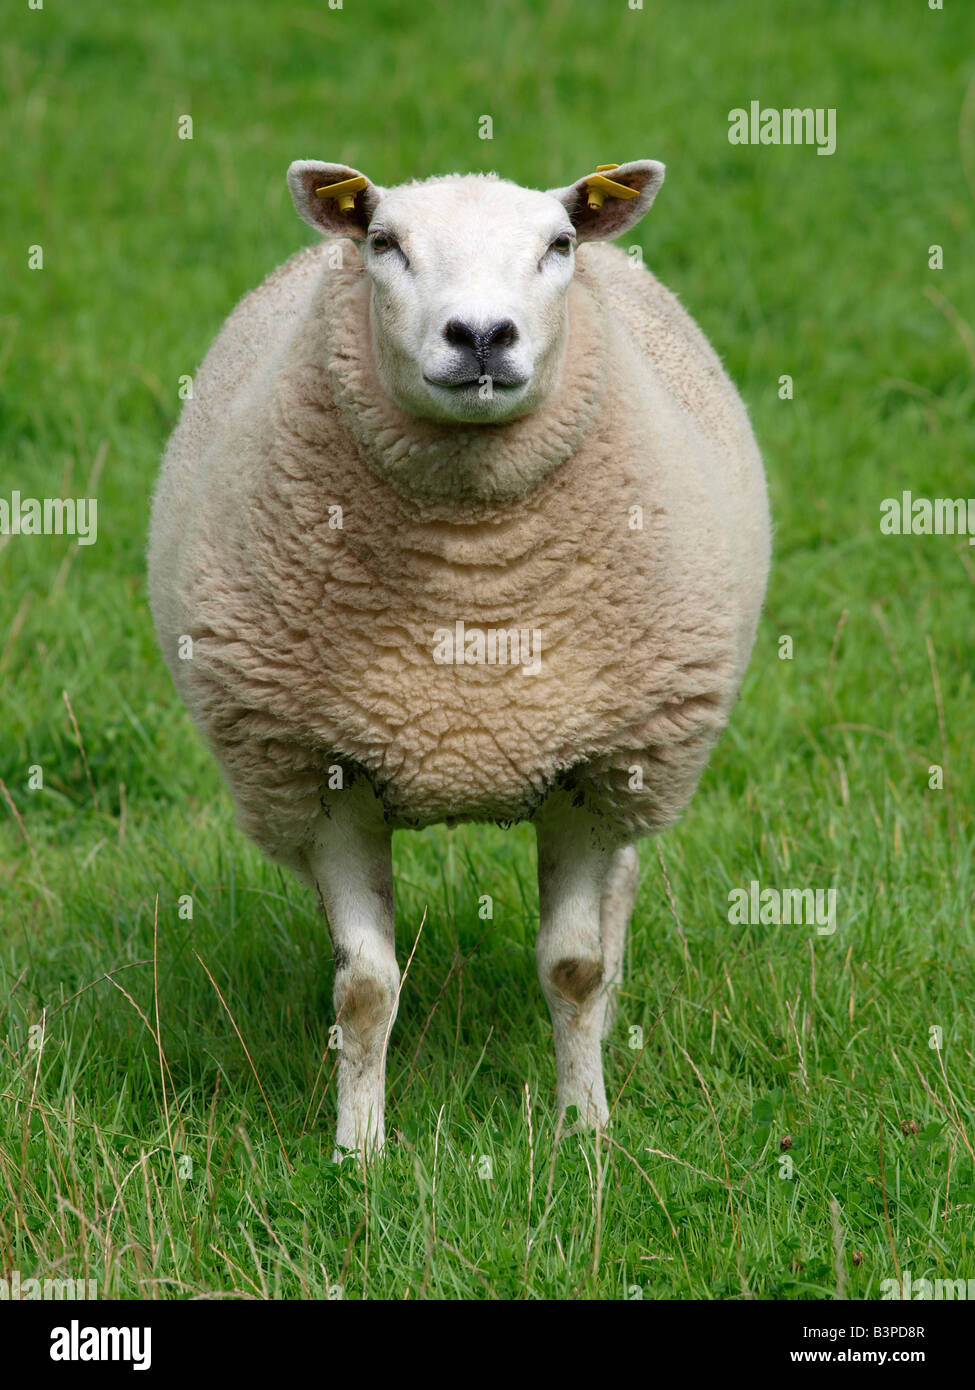 Sheep animal portrait frontal standing in grass field Fijnaart - Stock Image